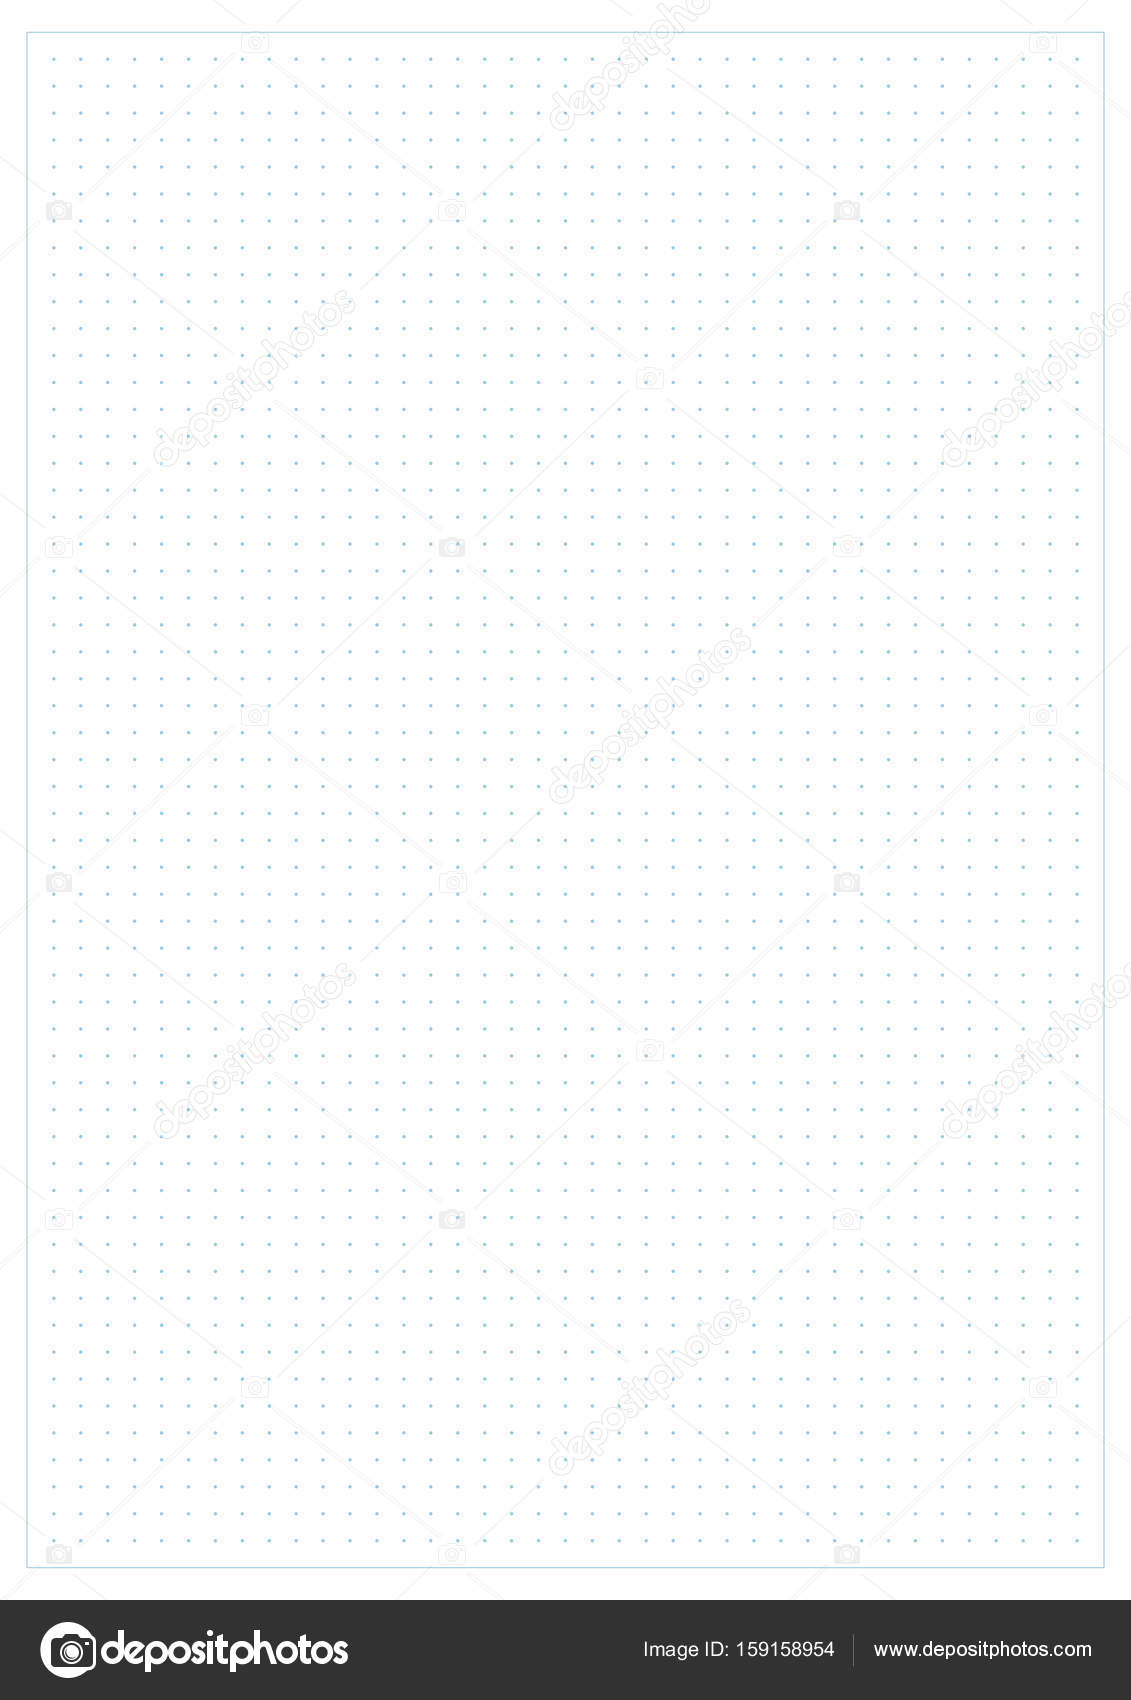 Dotted grid graph paper background \u2014 Stock Vector © laverock #159158954